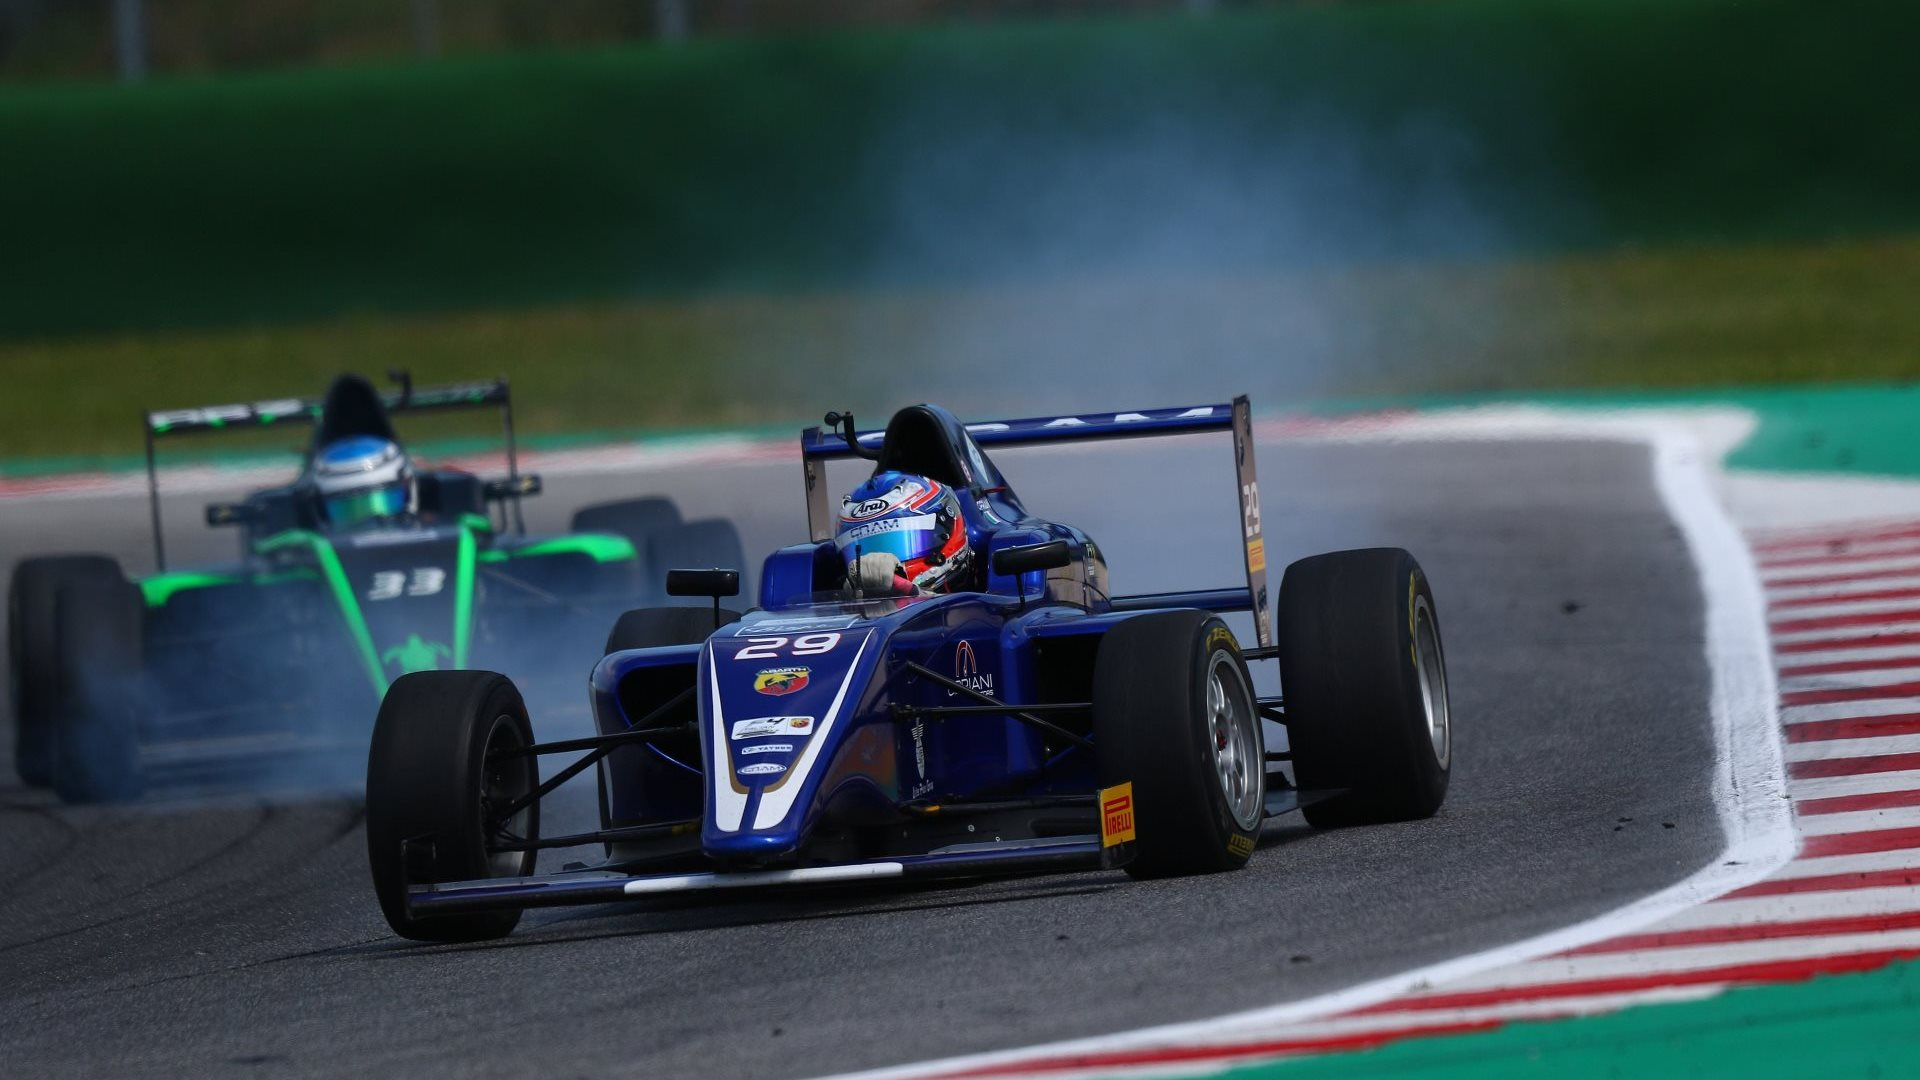 Italian F4 Championship <br><span class='sub-caption'>#Formule 4</span><br><a href='/exkluzivne/italian-f4-championship-9ccf0c8b.html' class='btn btn-info rounded-0 read-more'>Více o pořadu</a>